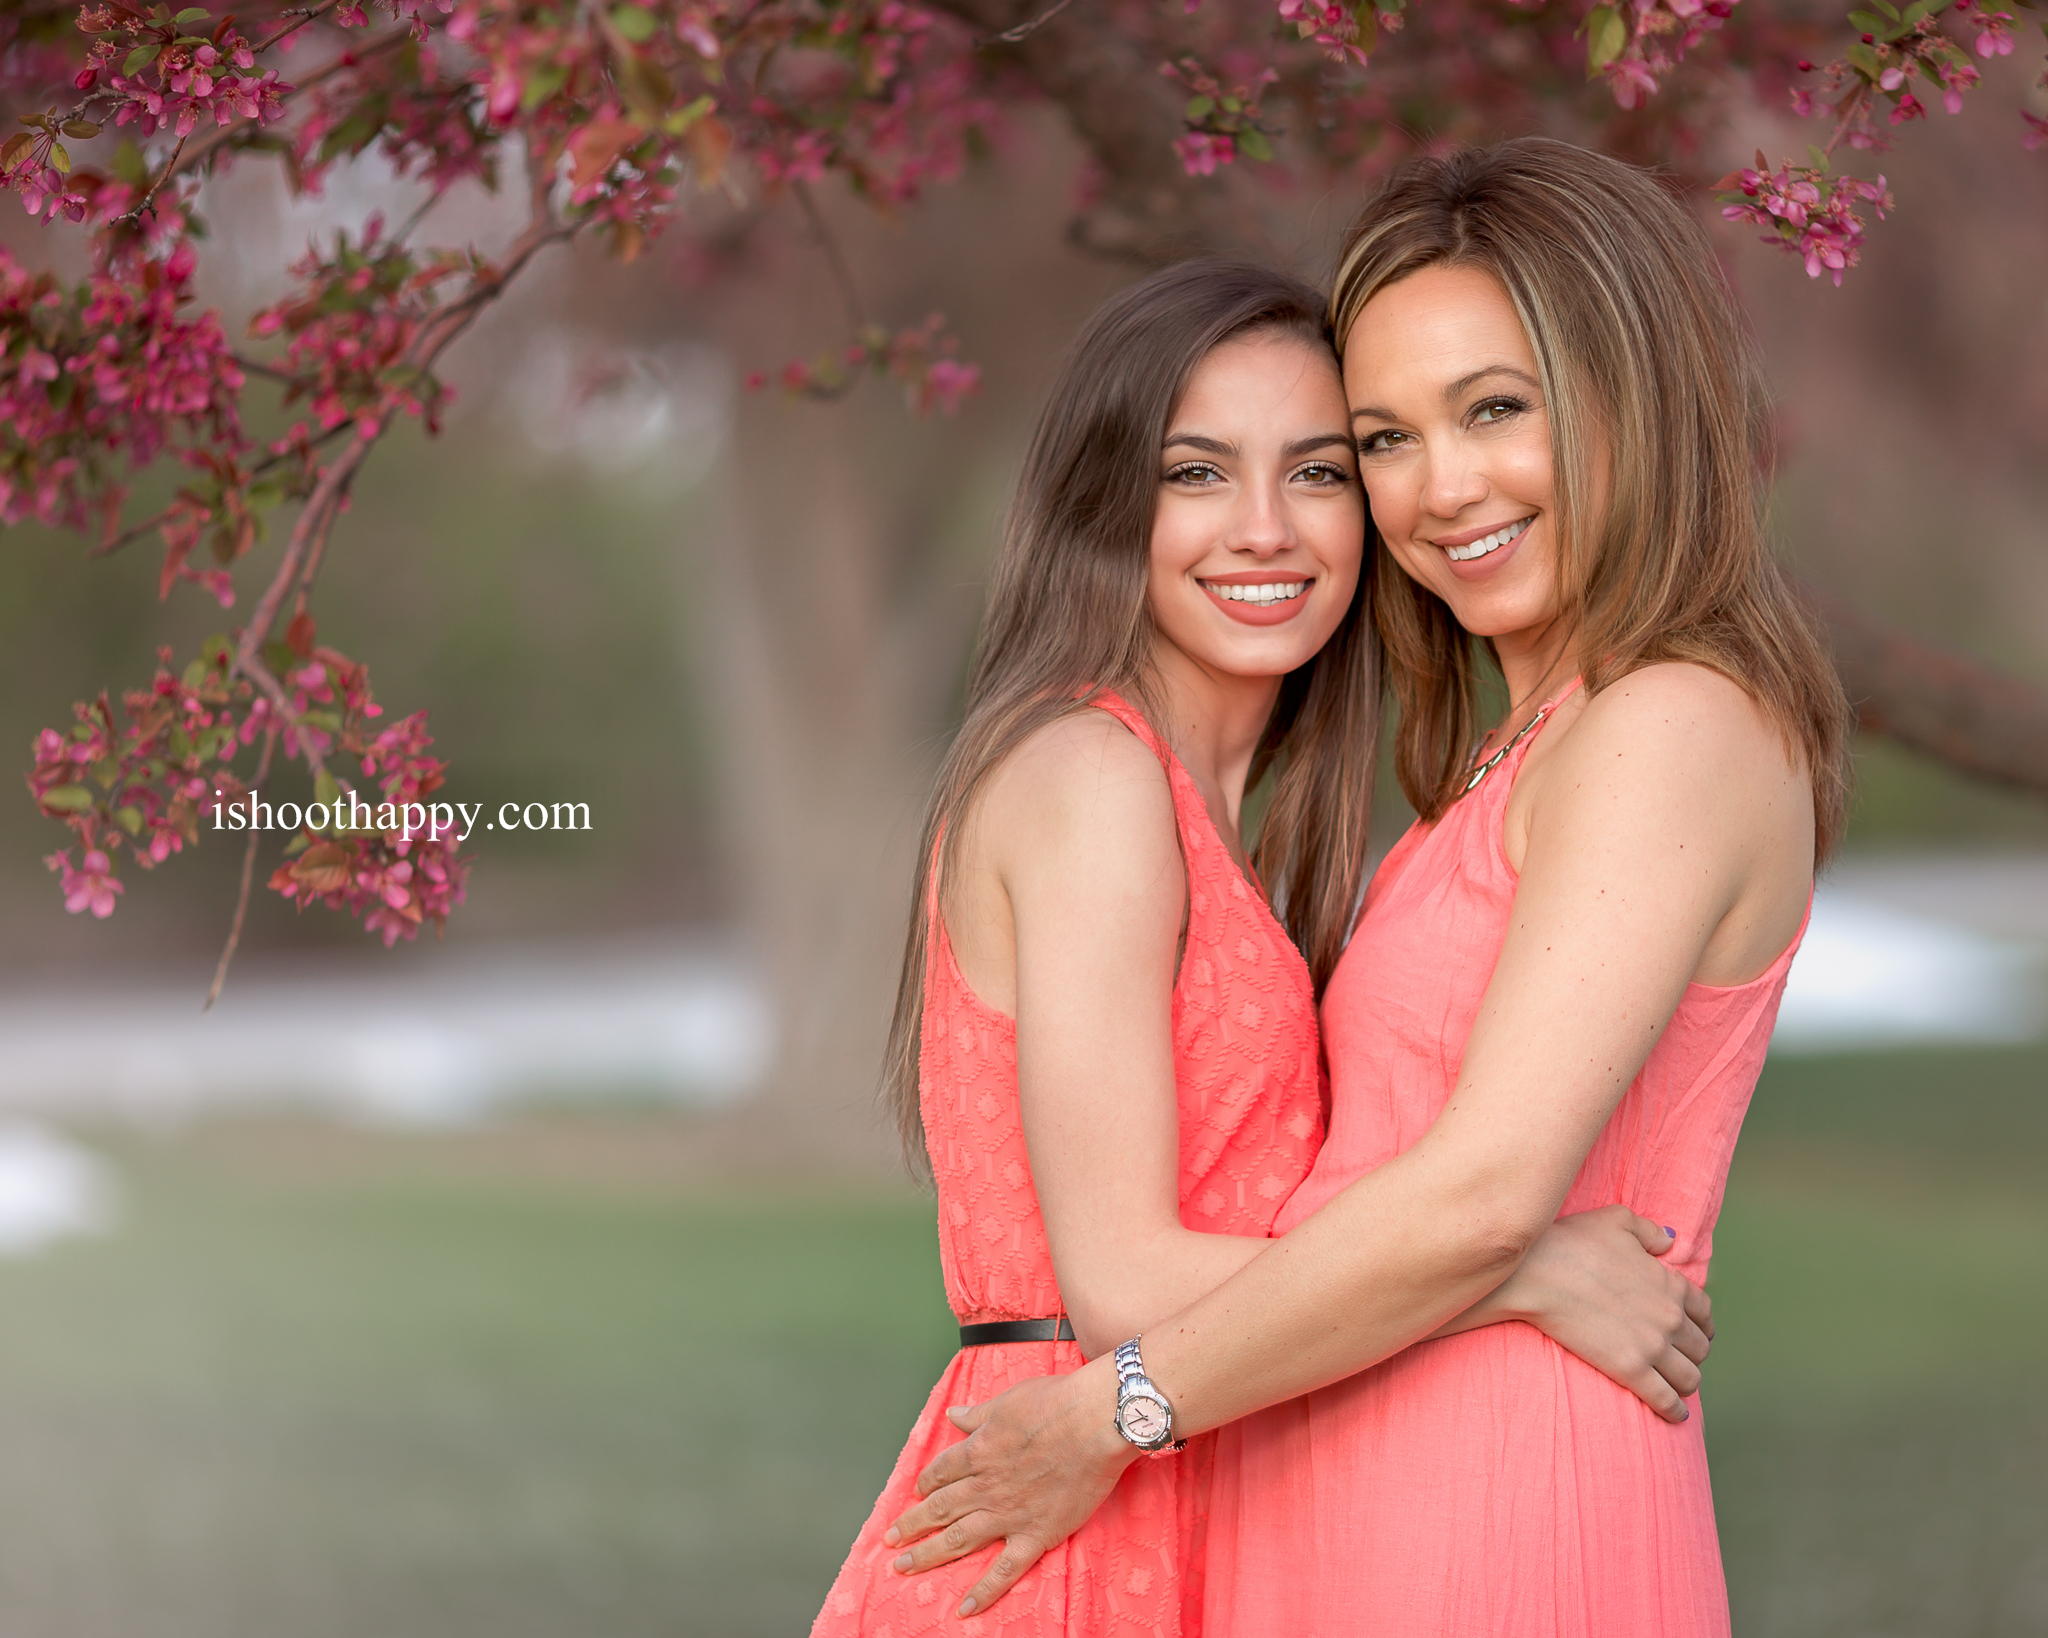 family photo, denver family photography, colorado family photographer, mother daughter, spring, pink blossoms, mothers day photo, mothers day photography, mommy and me